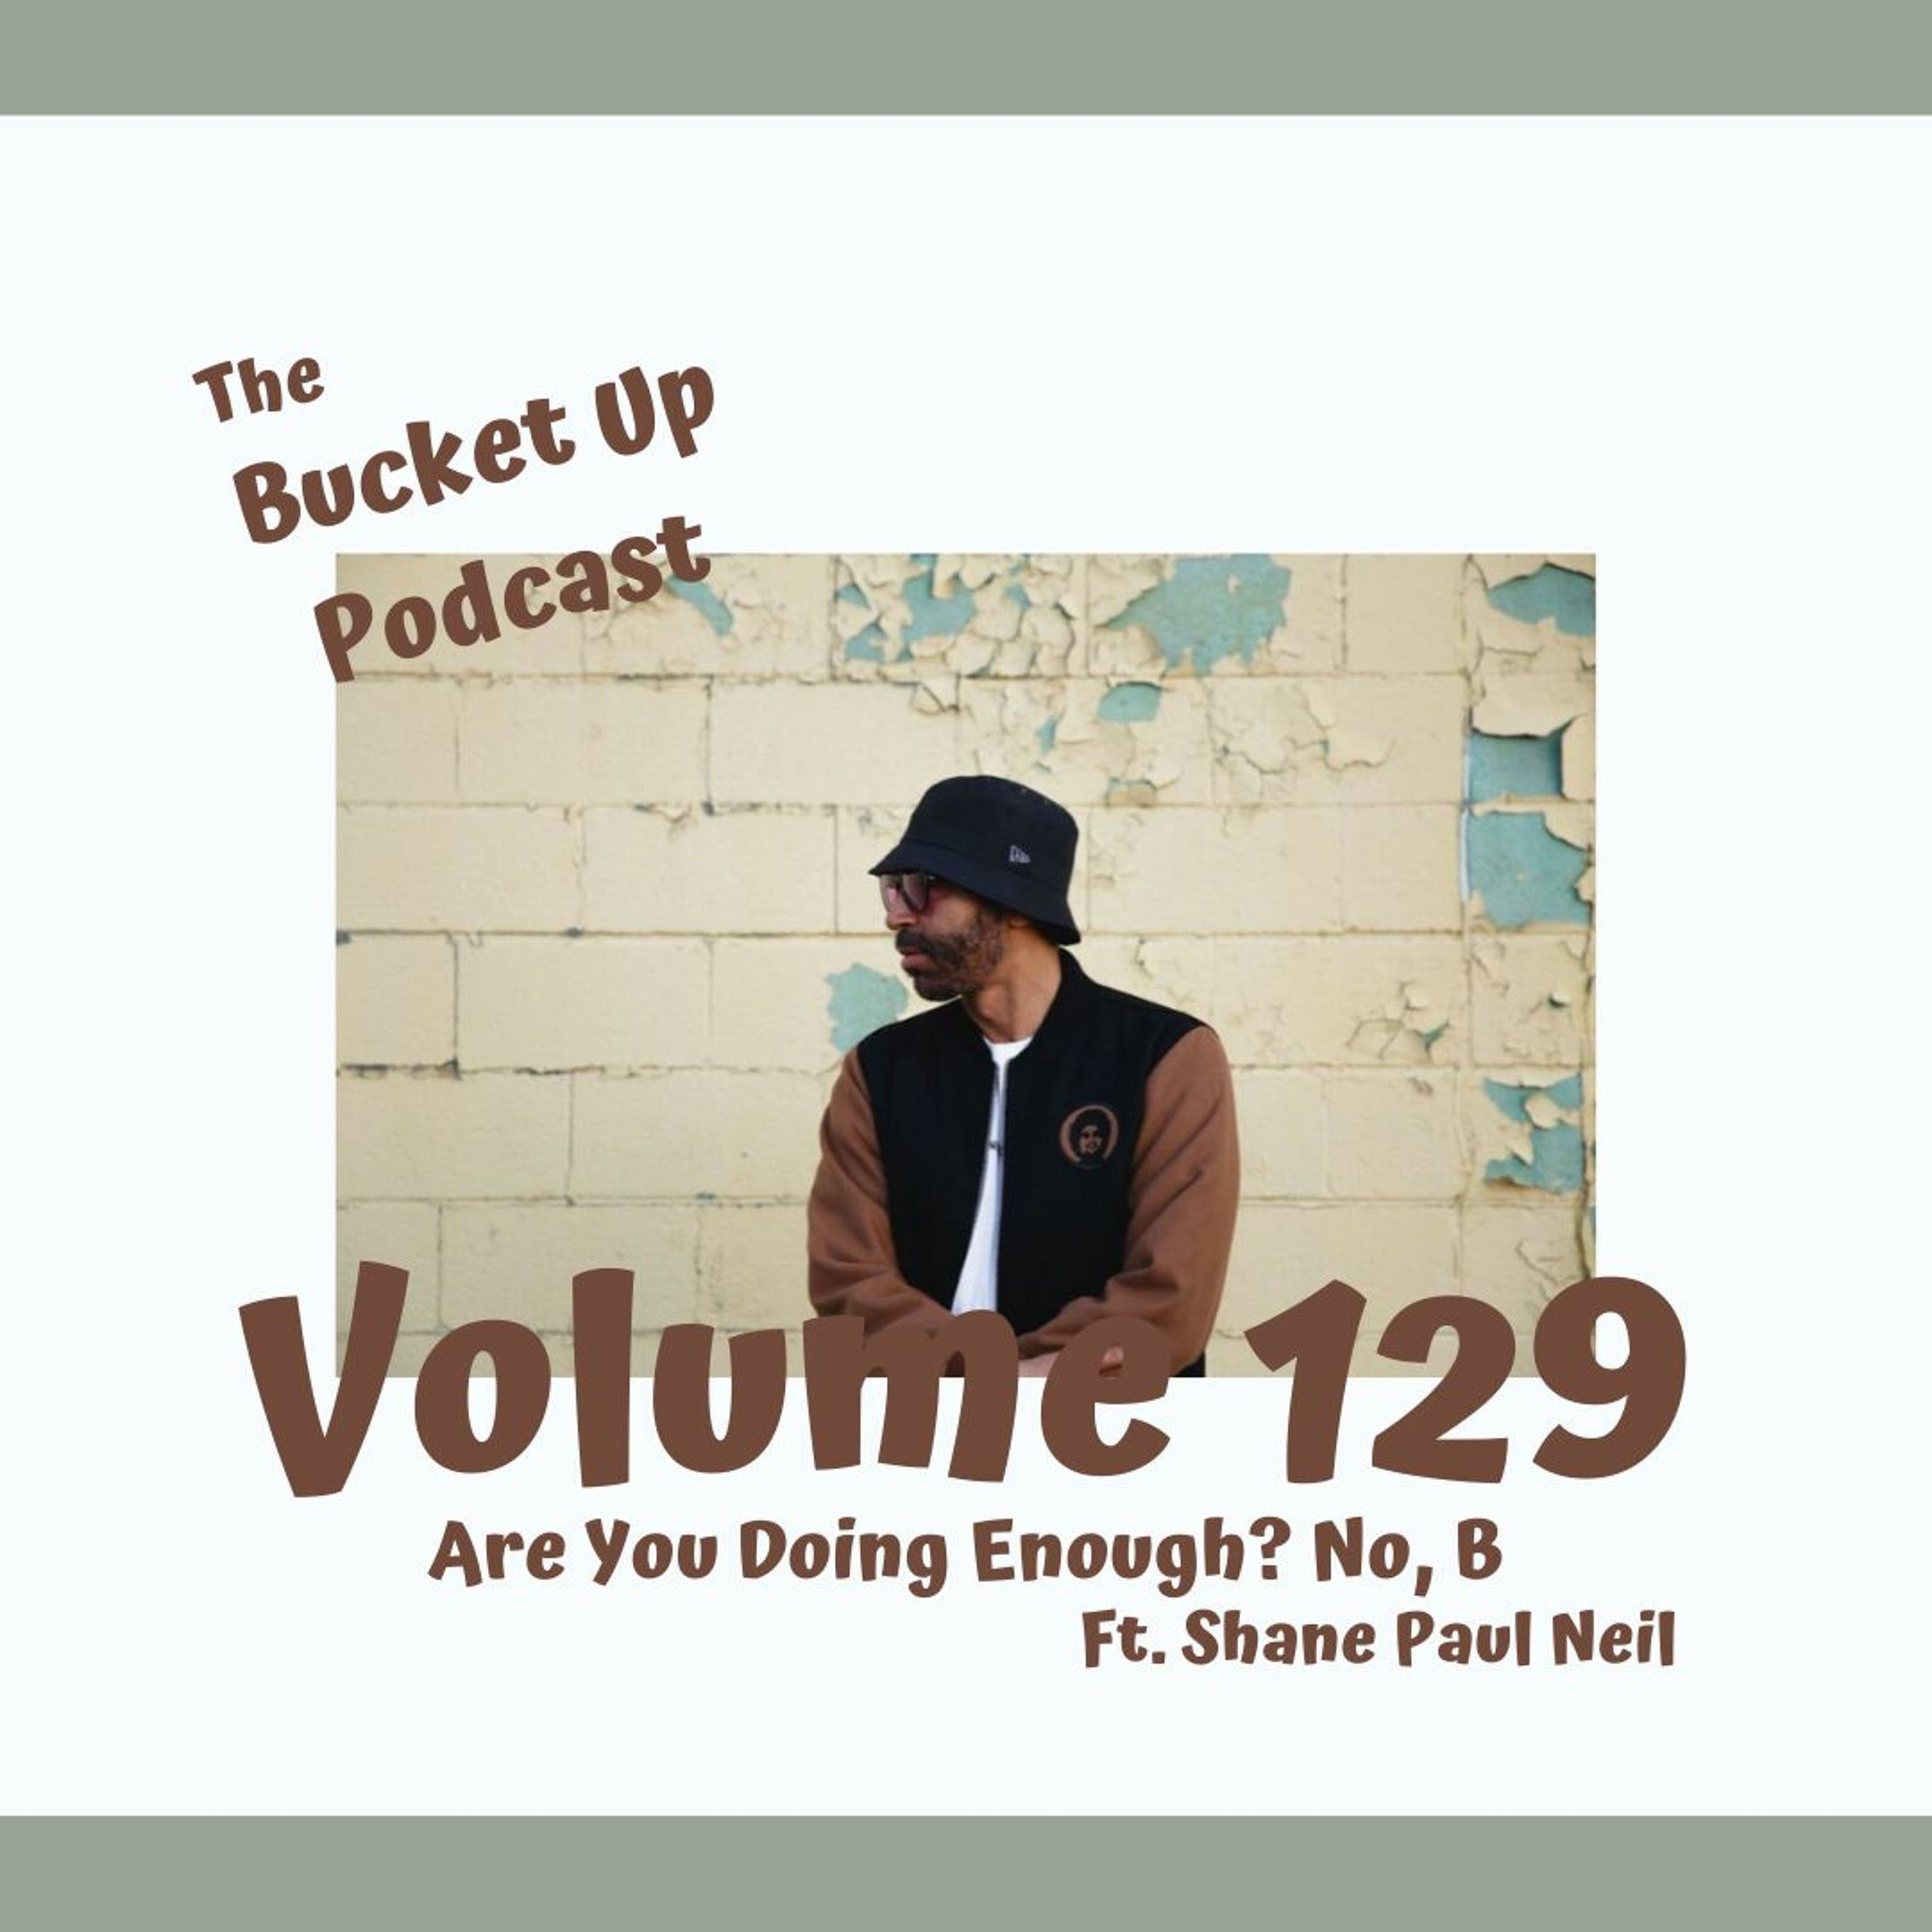 Volume 129: Are You Doing Enough? No, B Ft. Shane Paul Neil